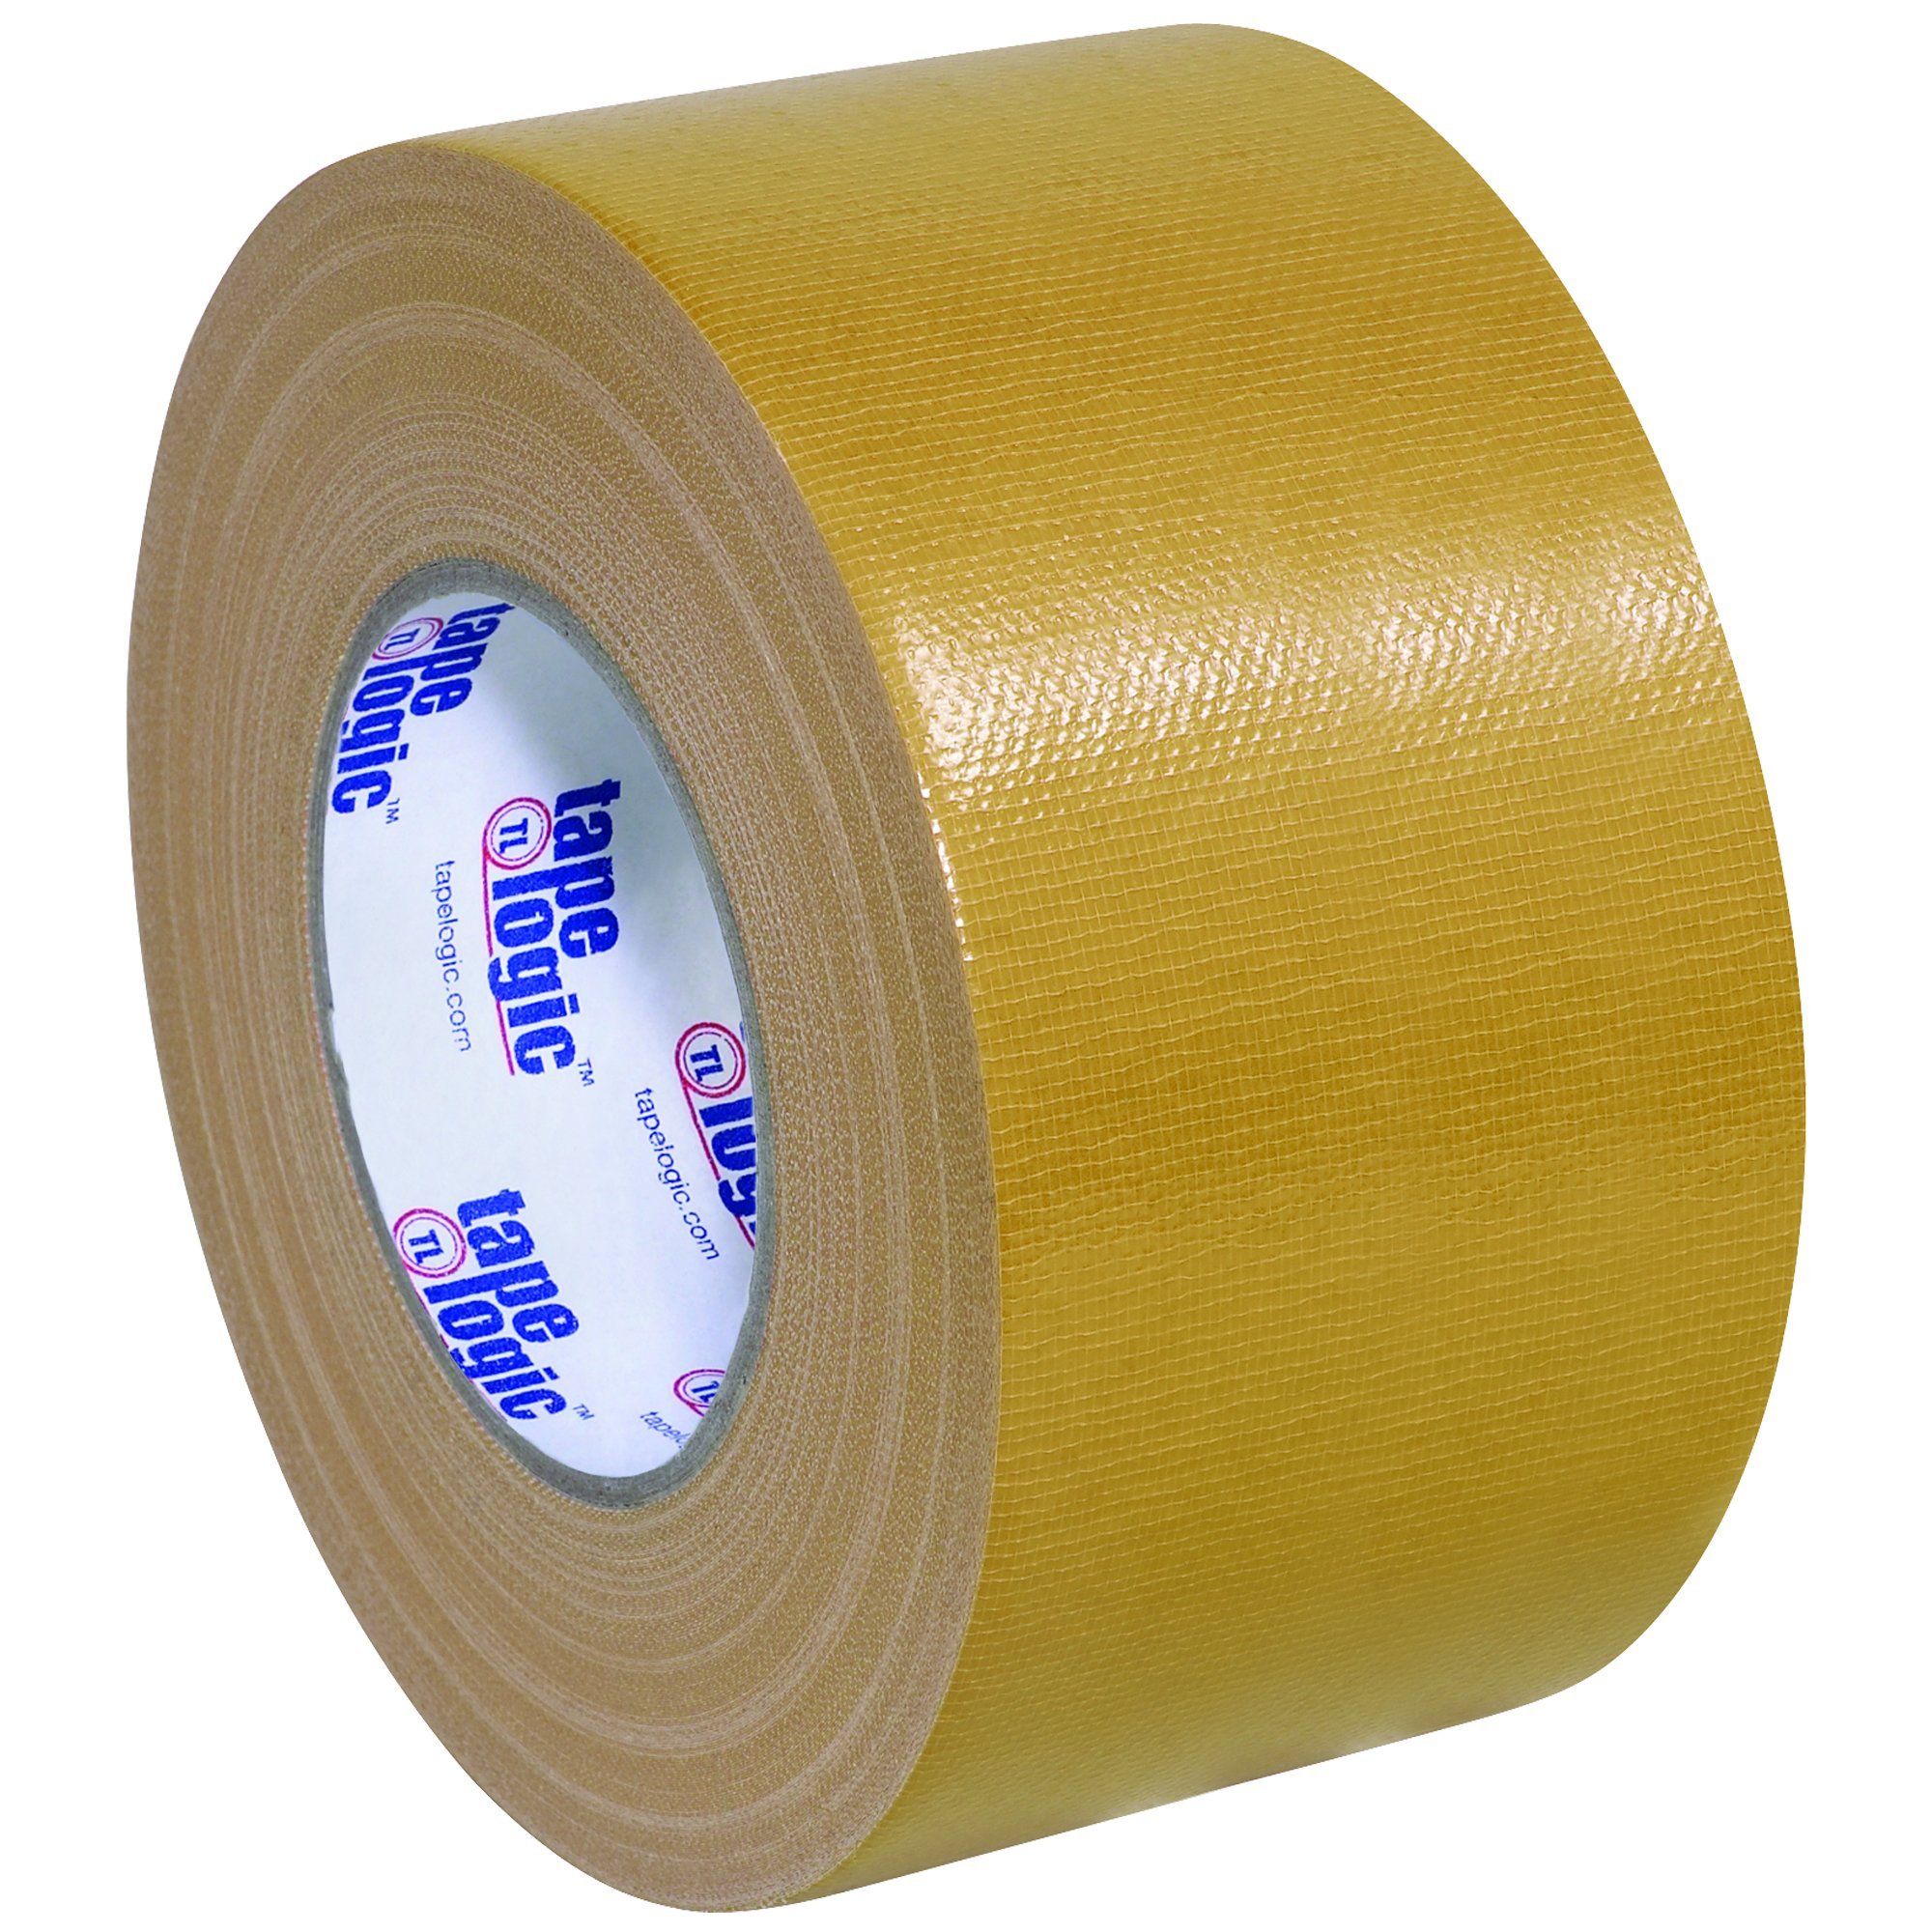 BOX USA BT988100BE Beige Tape Logic Duct Tape, 10 mil, 3'' x 60 yd. (Pack of 16)